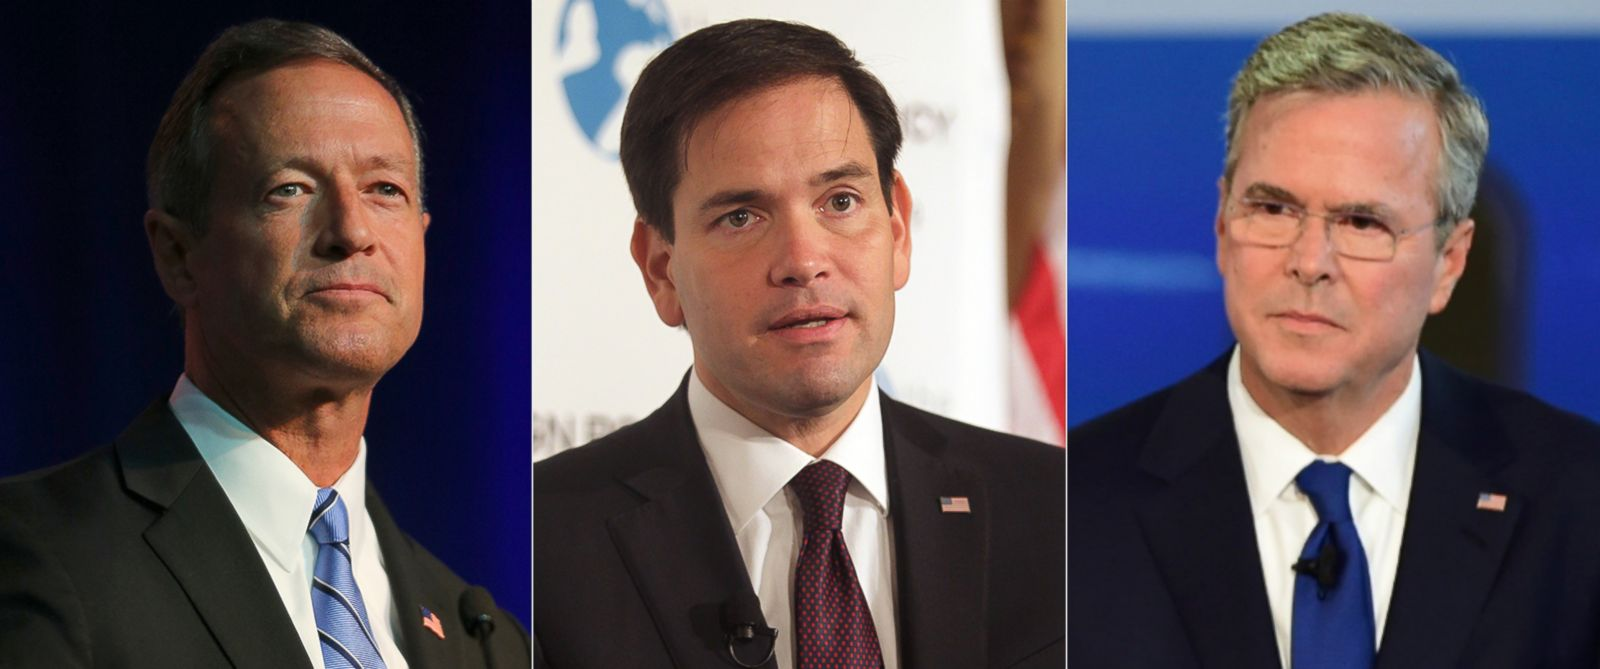 PHOTO: Pictured from left, Martin OMalley, Marco Rubio and Jeb Bush.